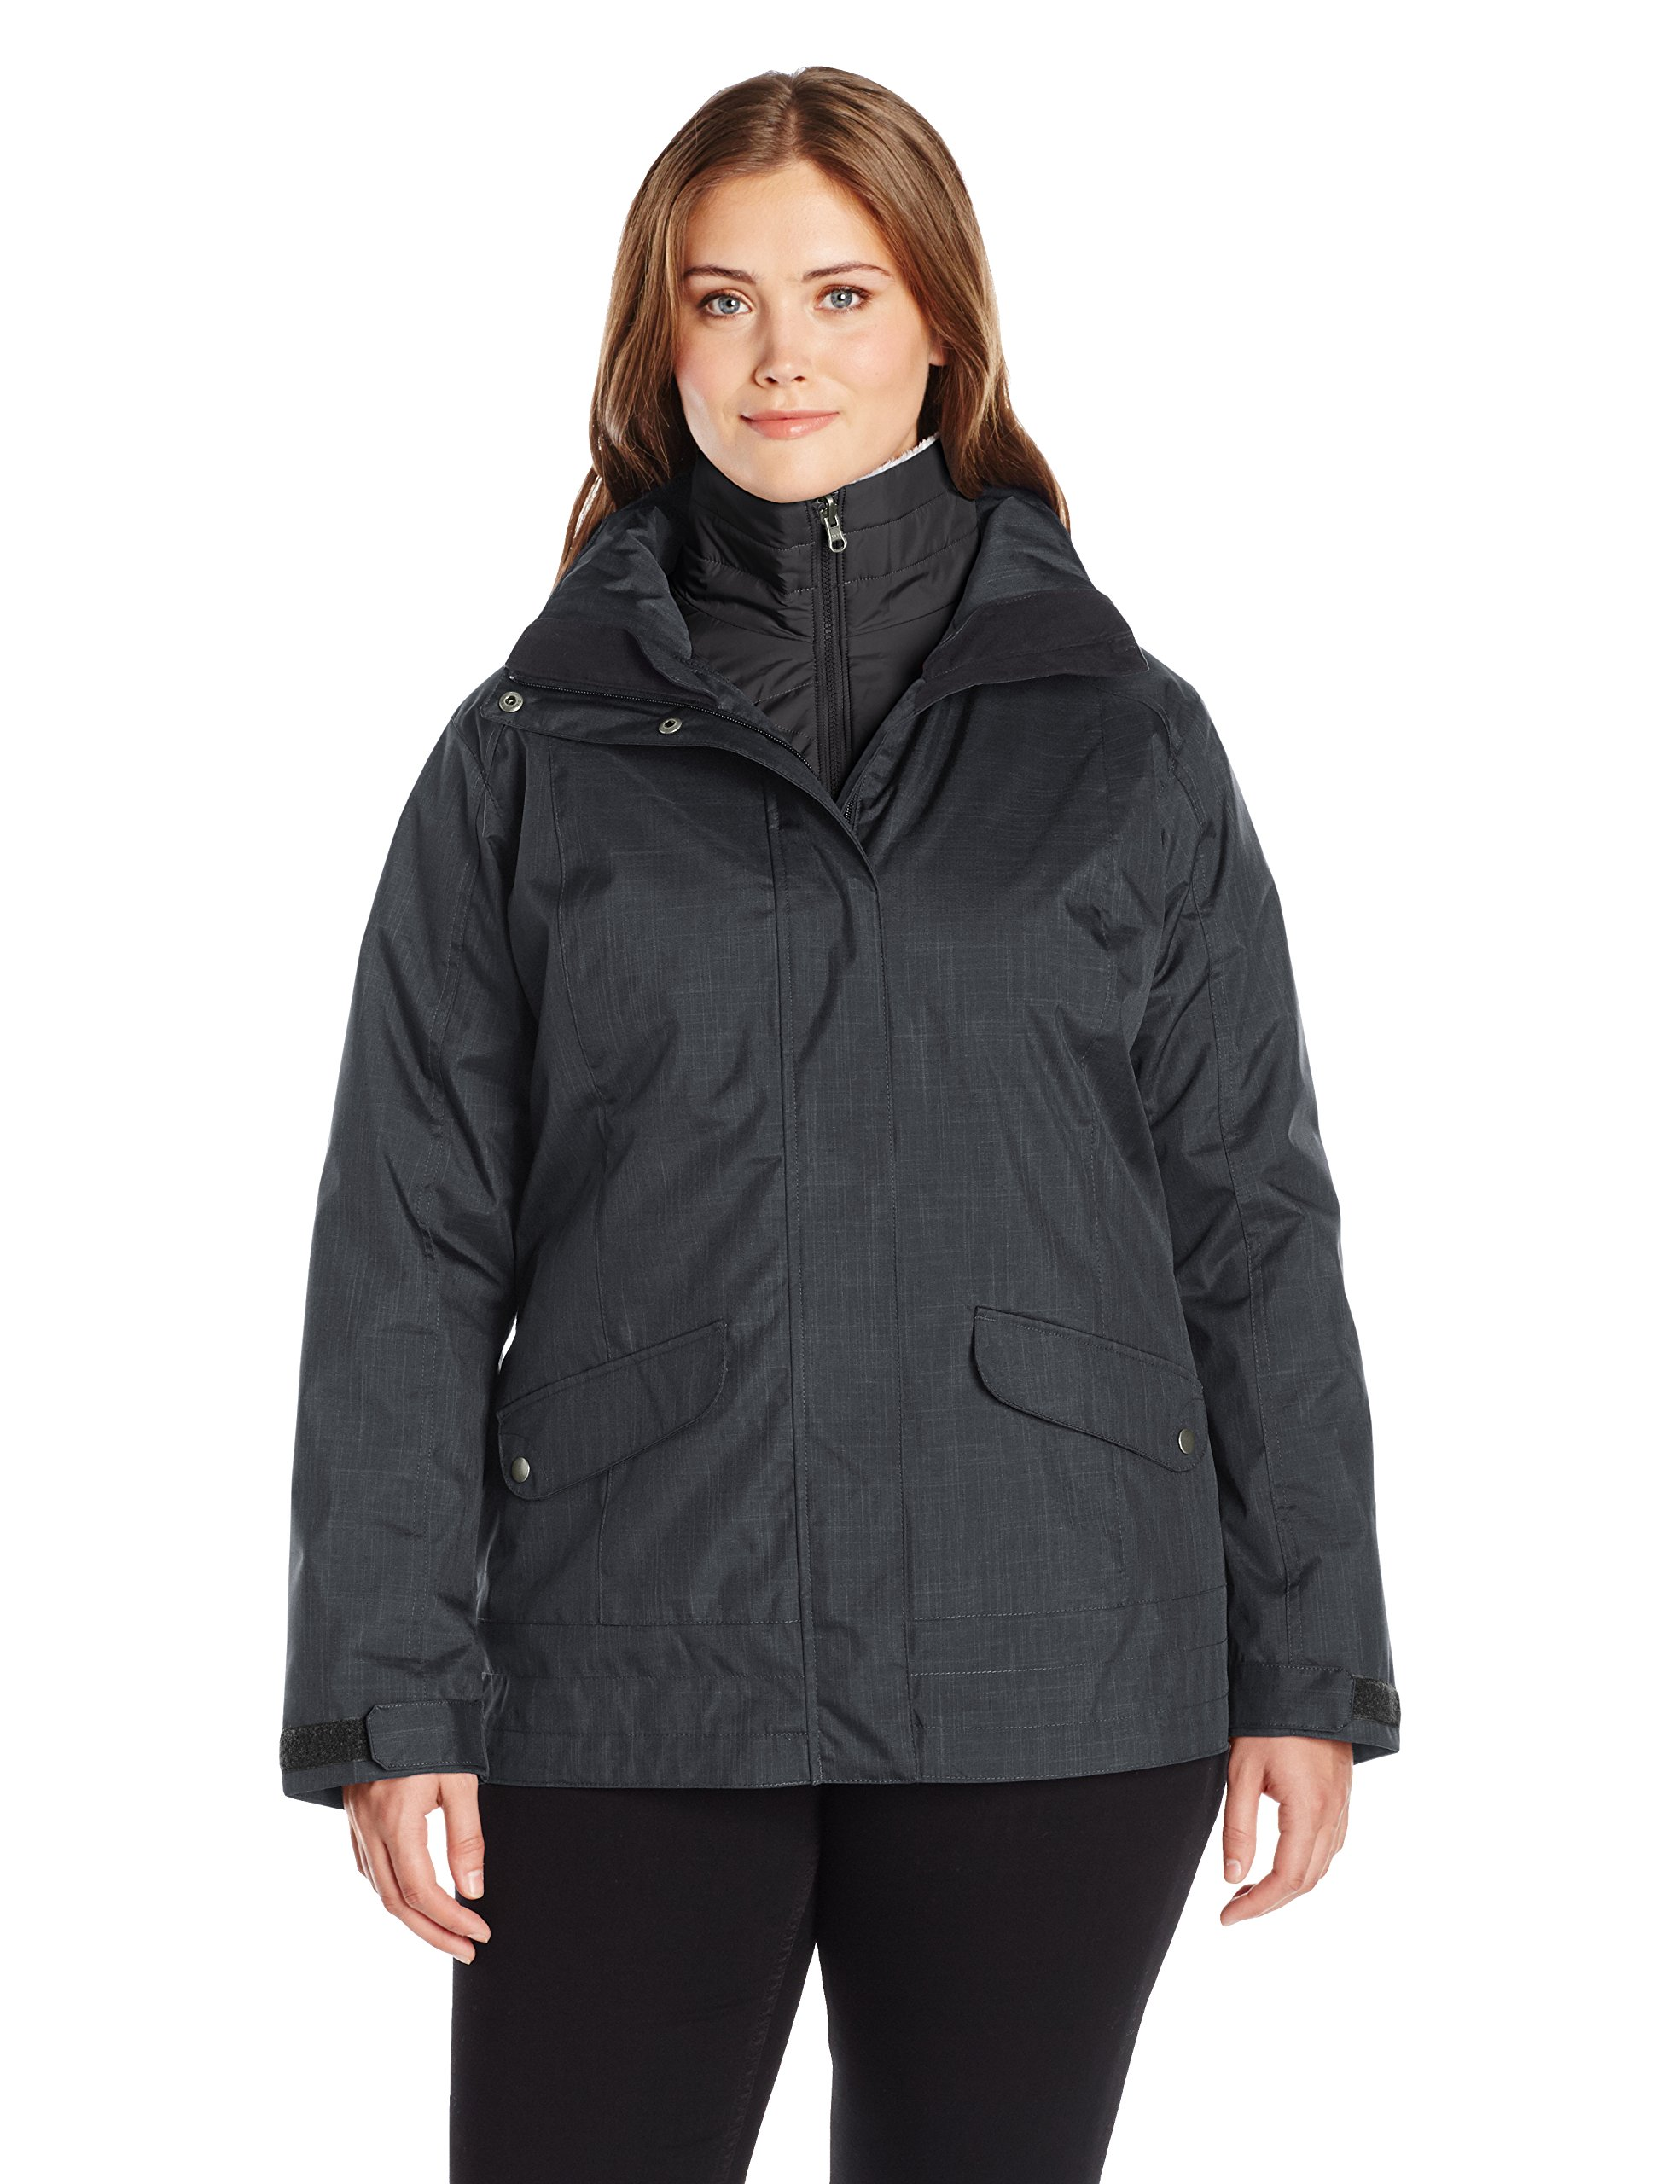 Columbia Women's Plus-Size Sleet To Street Interchange Jacket, Black, 3X by Columbia